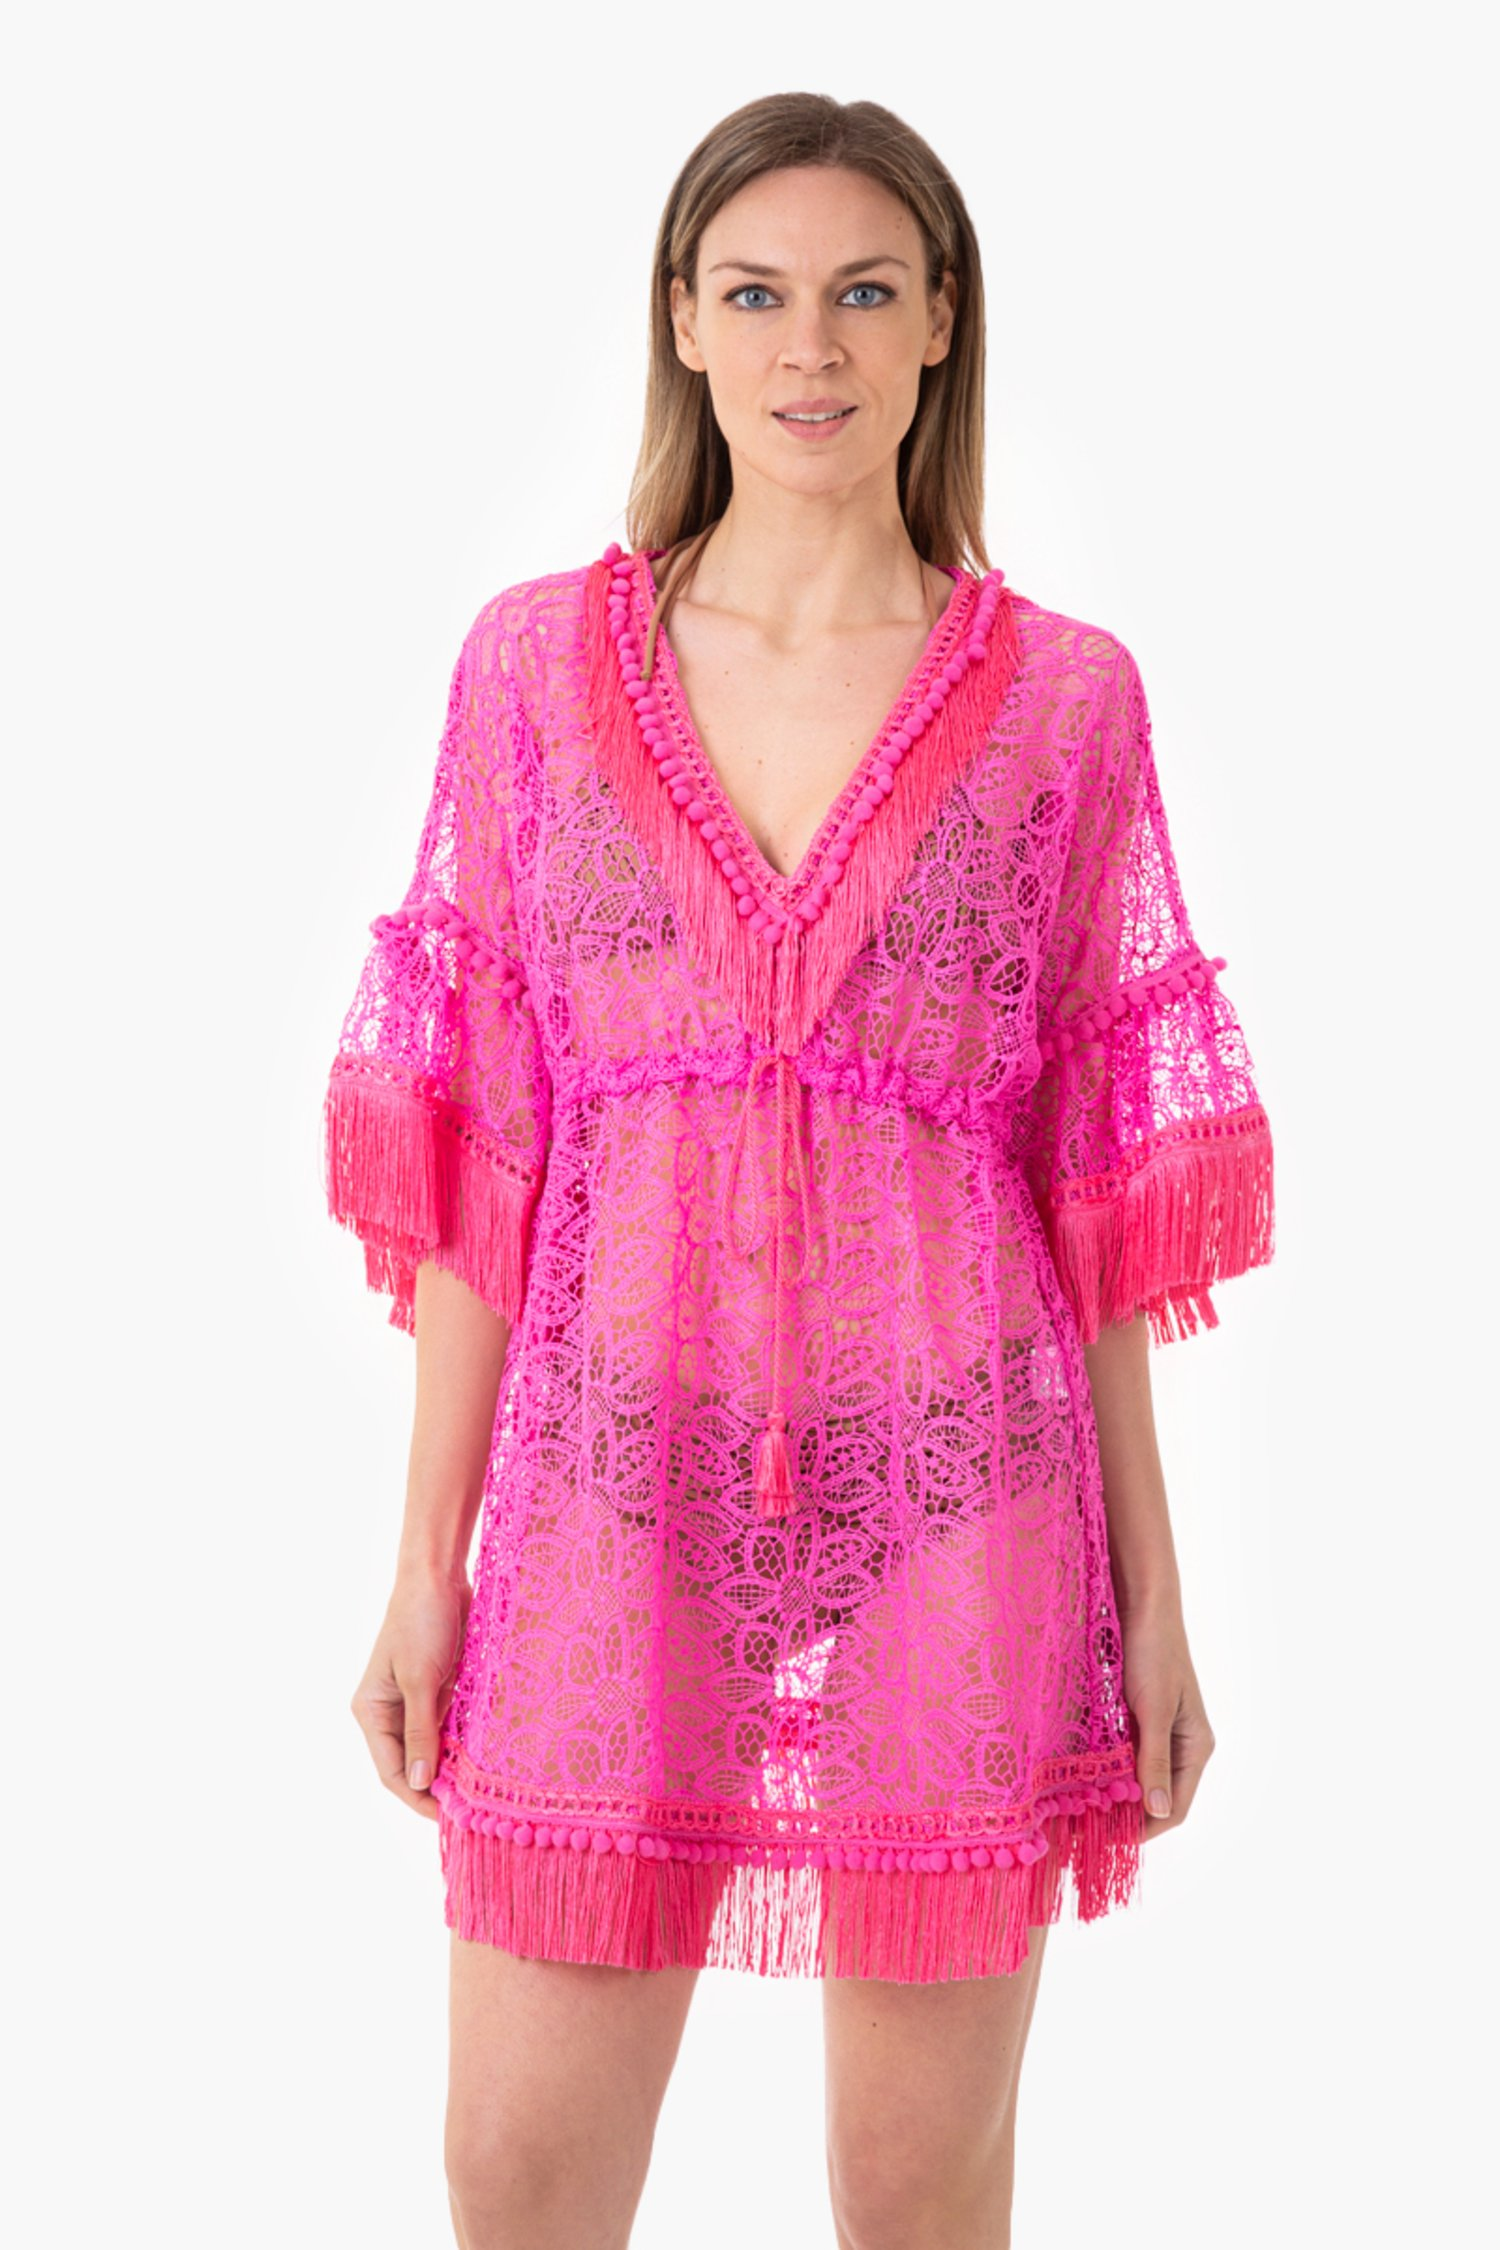 MACRAME' LACE SHORT KAFTAN WITH TRIMMING DETAILS - Pizzo Macrame' Camelia